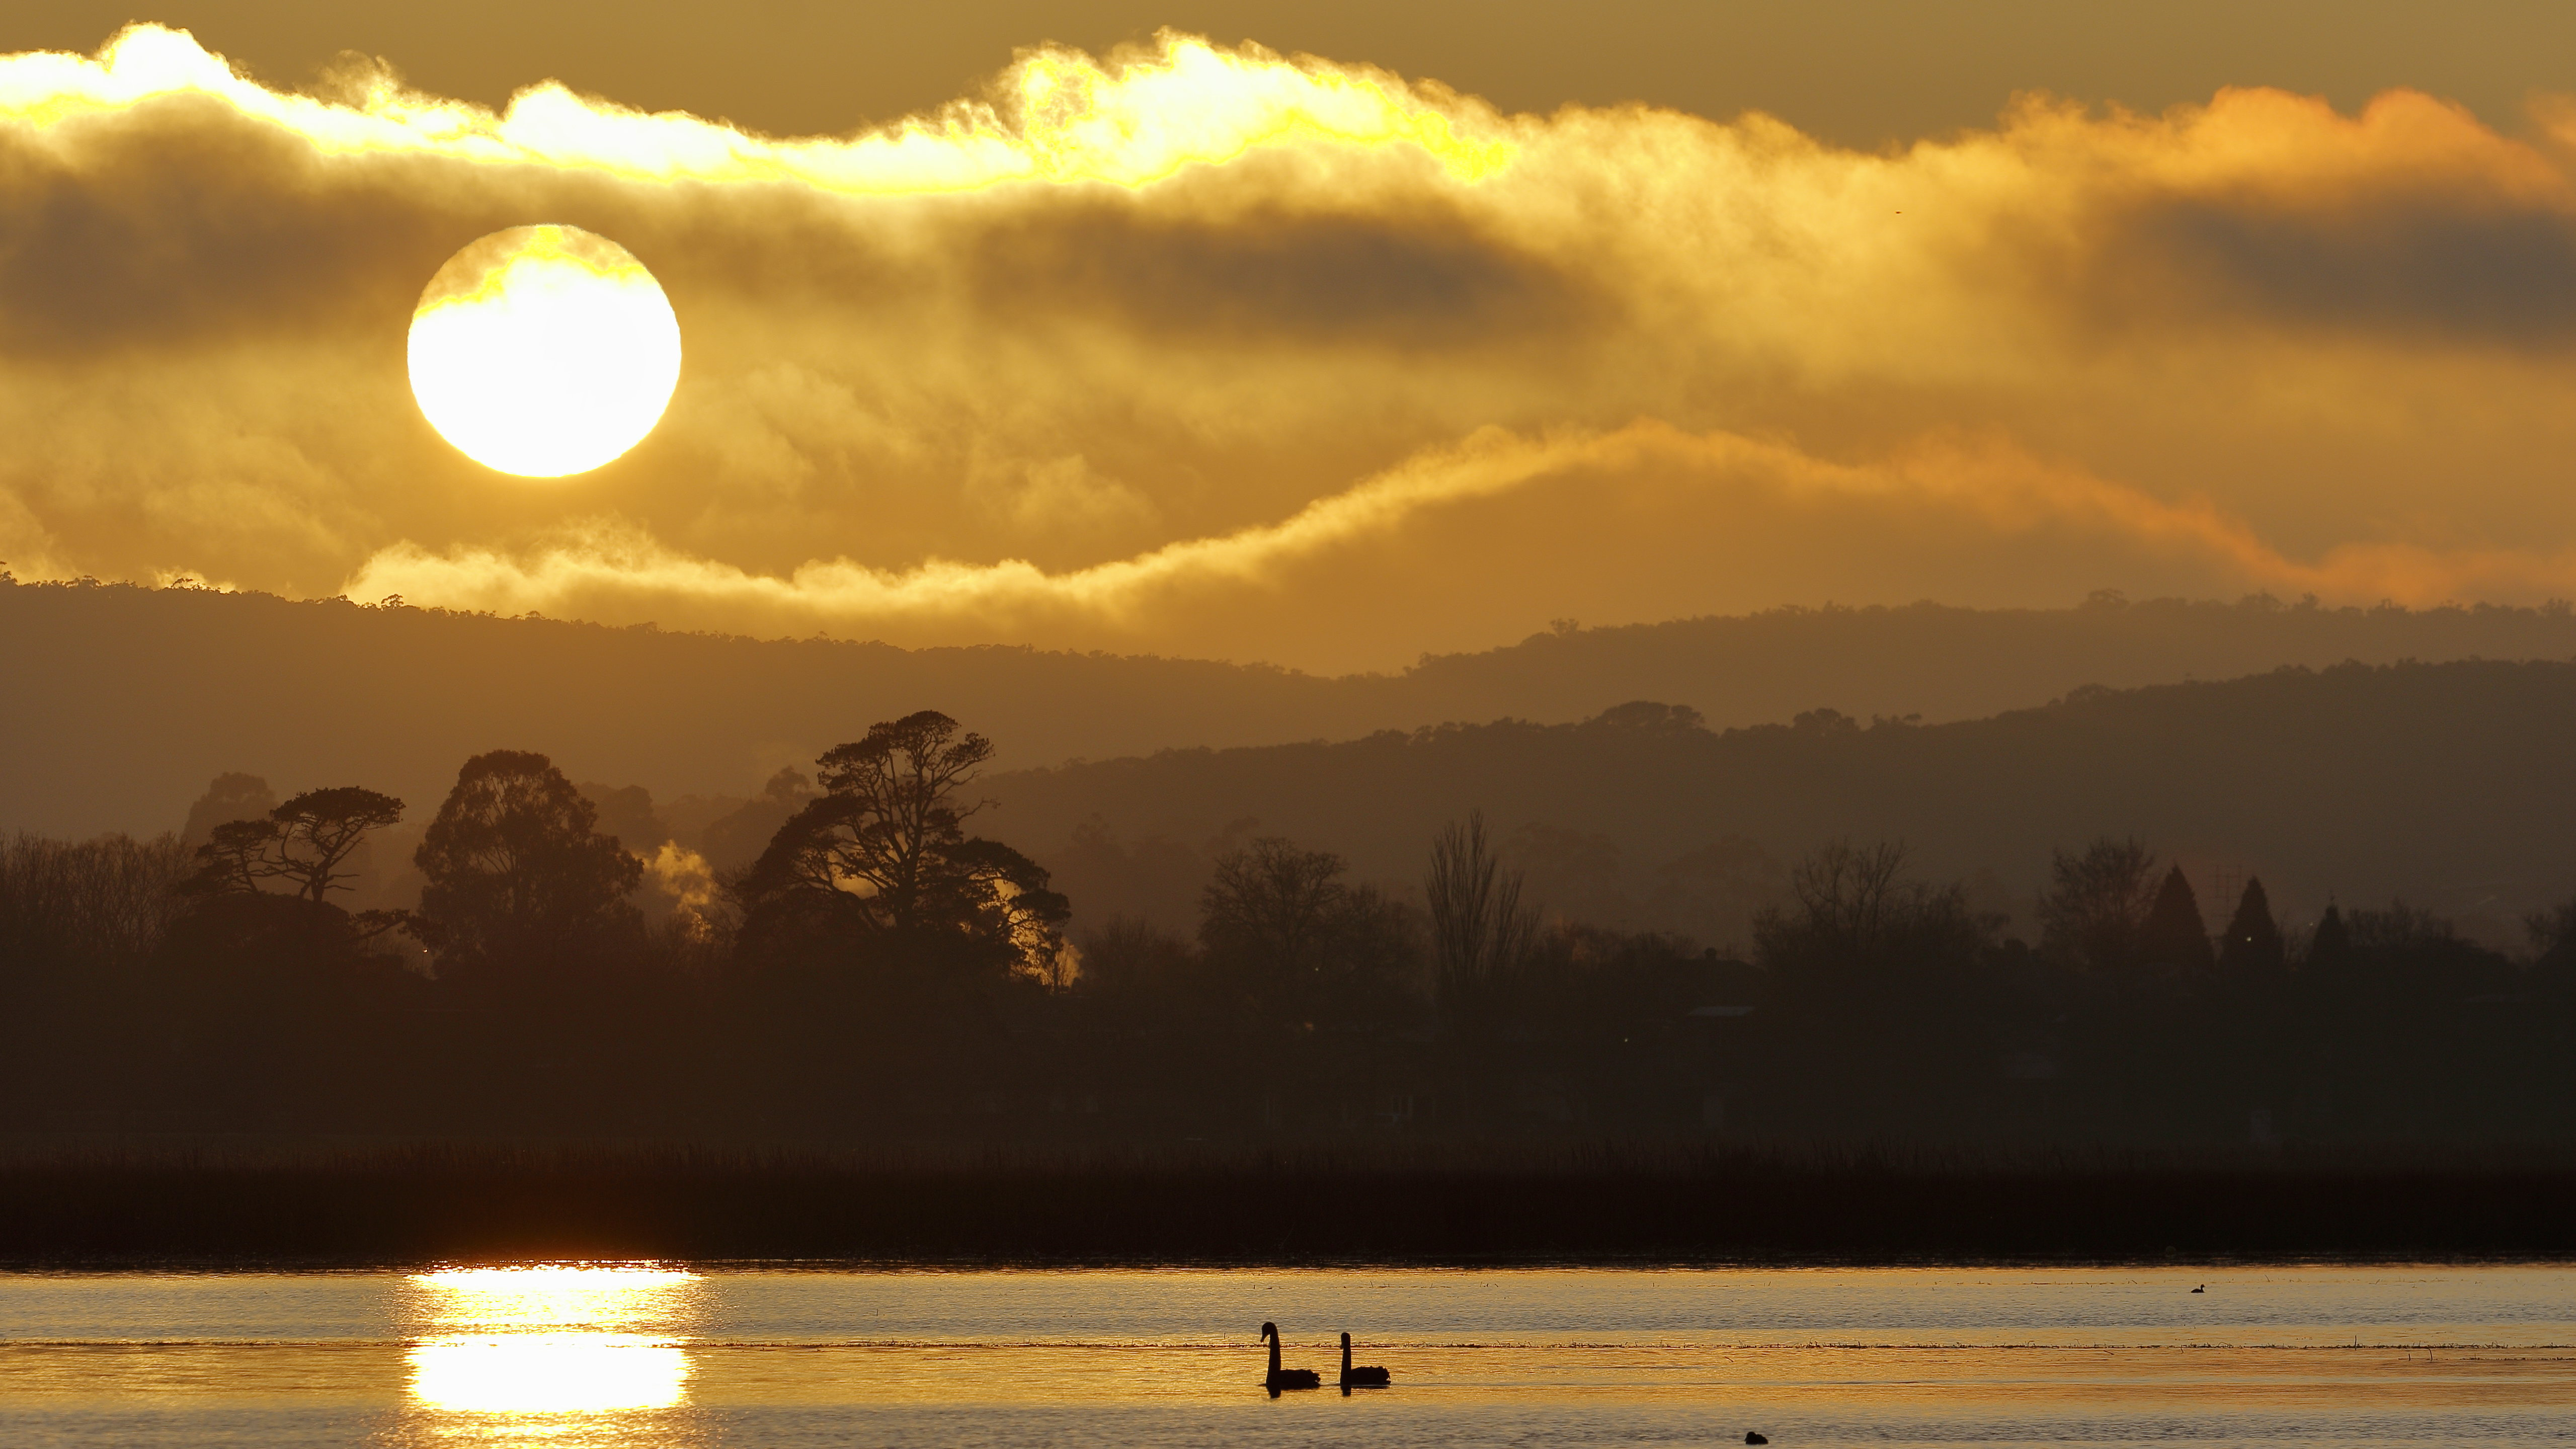 55832 download wallpaper Nature, Swans, Lake, Sunset, Trees, Sky, Birds screensavers and pictures for free